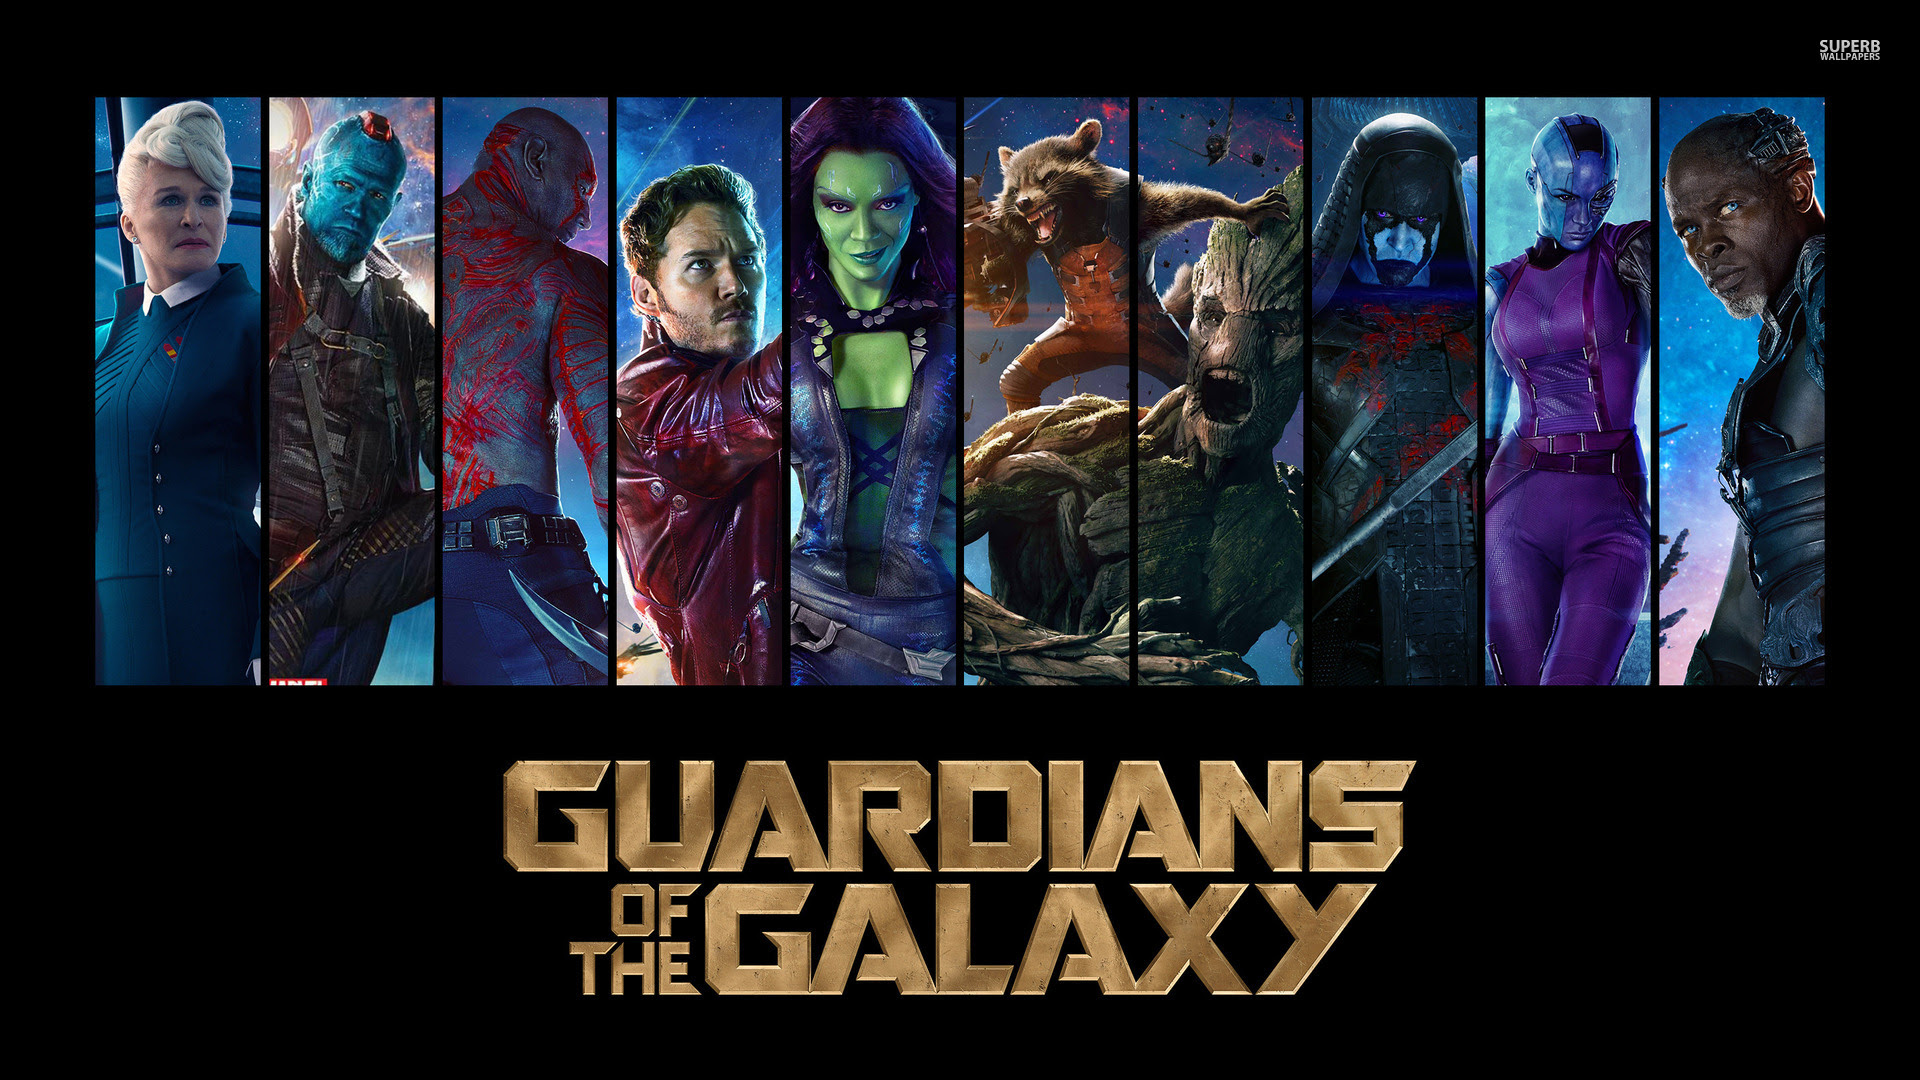 Guardians Of The Galaxy Wallpaper 1920x1080 8181